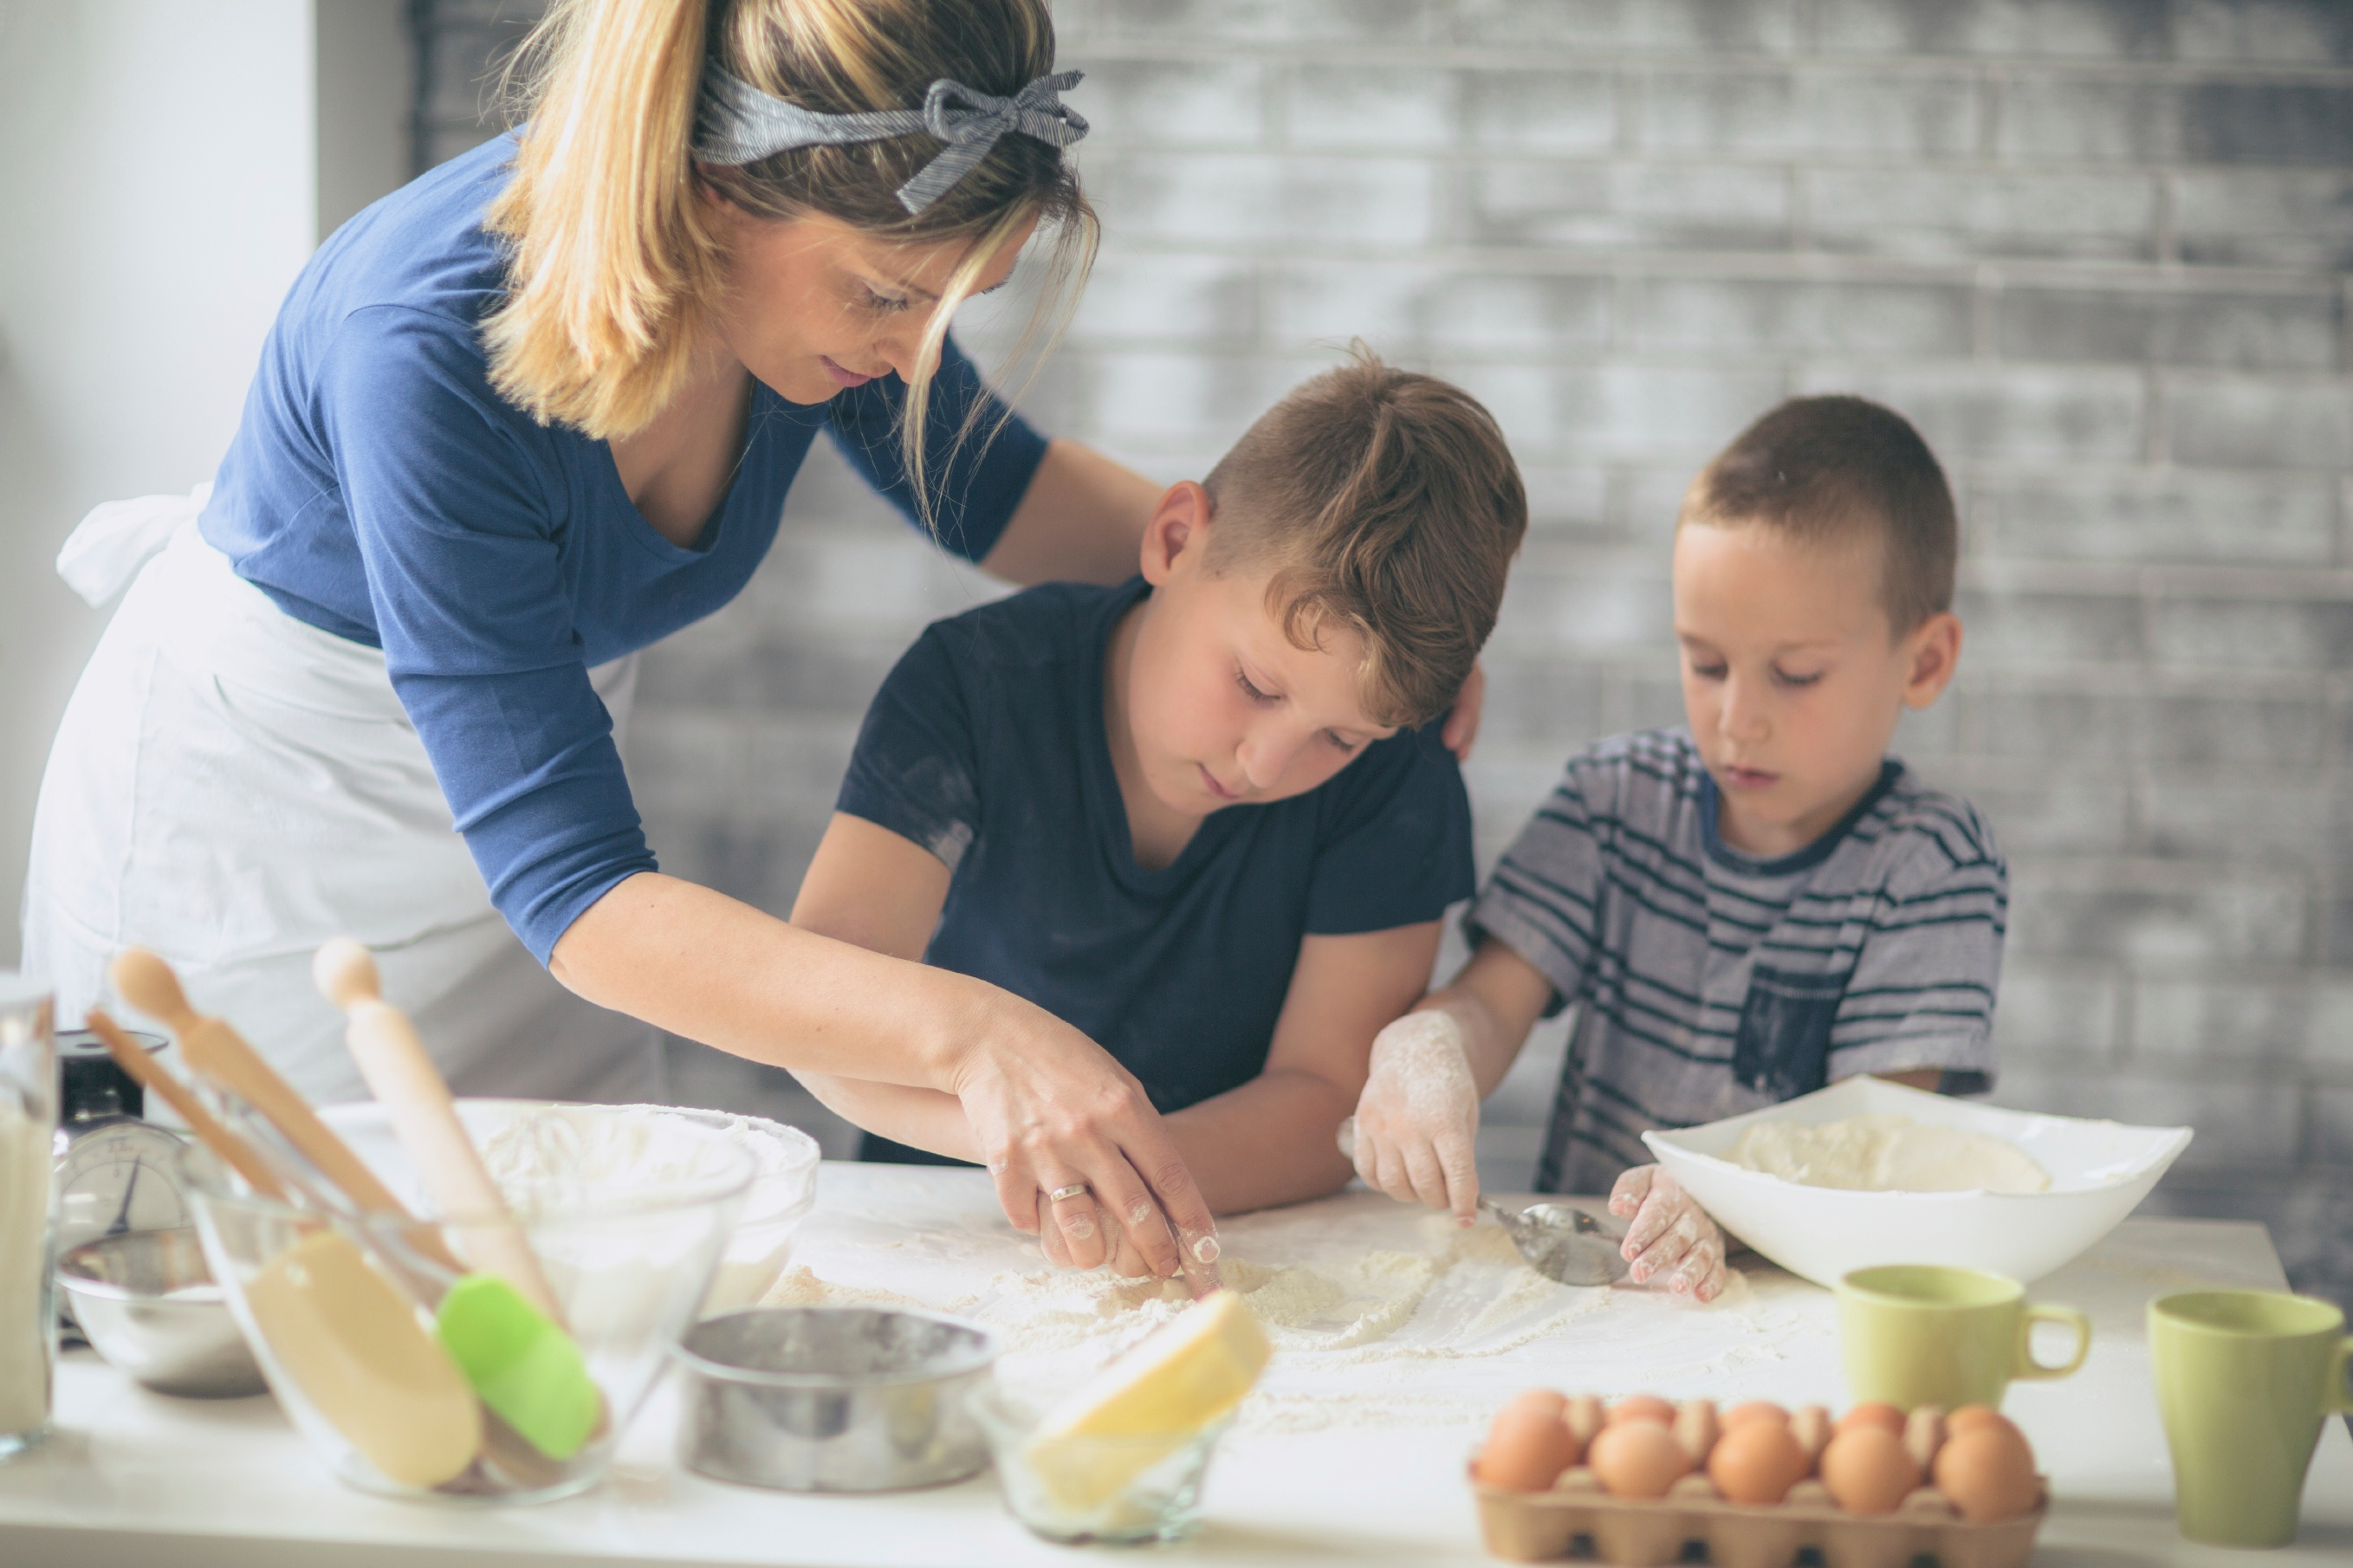 Mother doing a cooking activity together